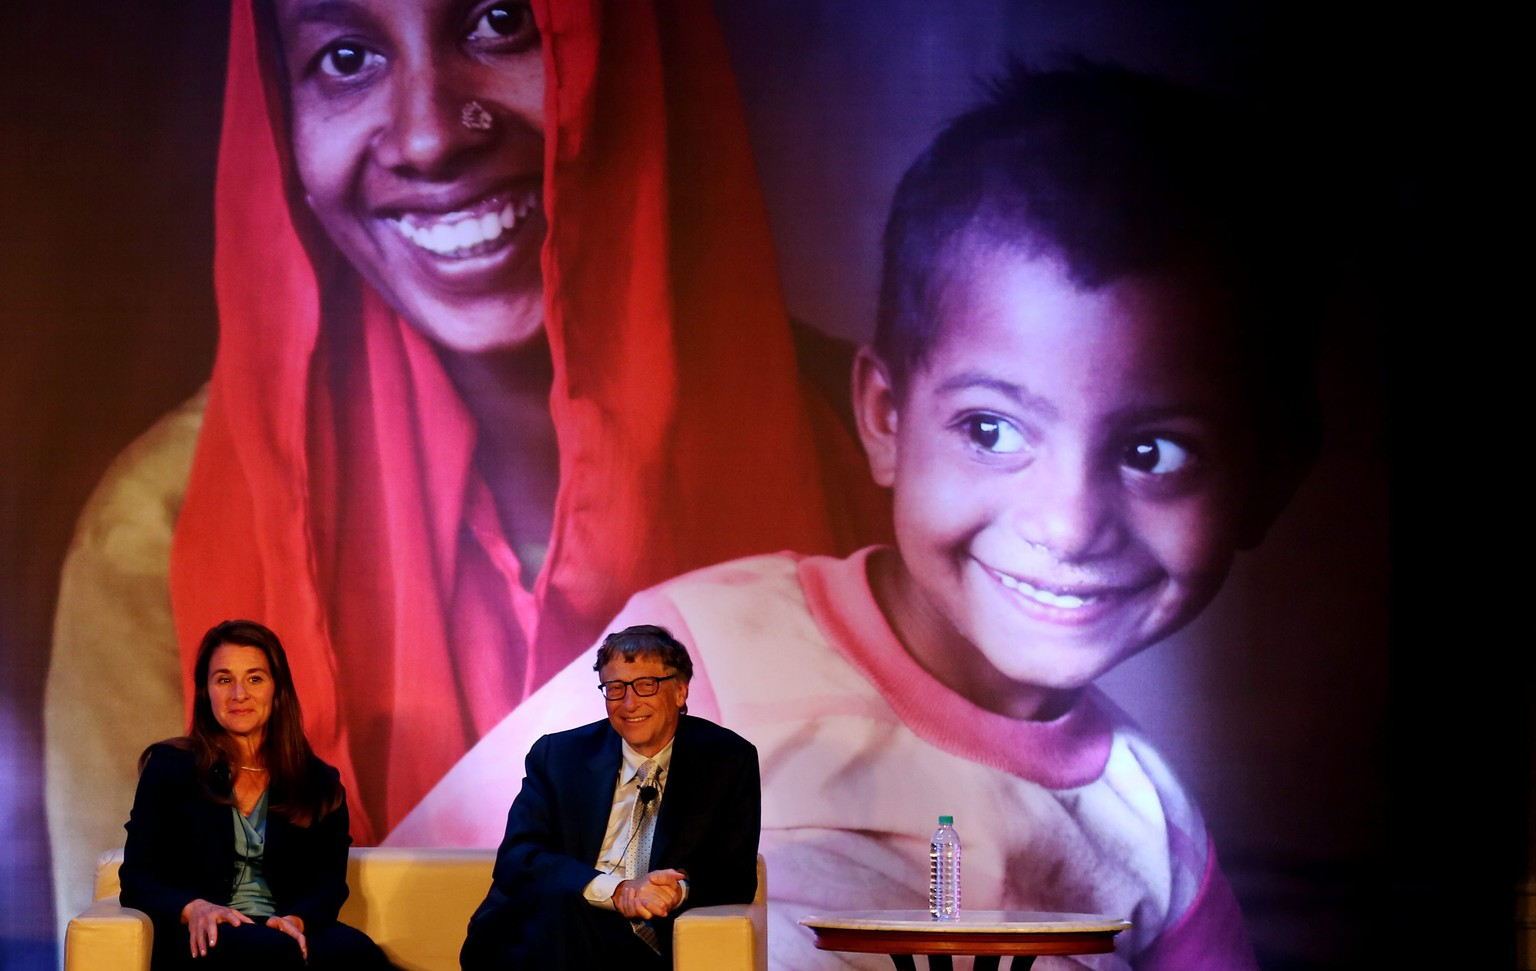 "epa04405692 Founders of the Bill and Melinda Gates Foundation, Melinda Gates and Bill Gates attend an event in New Delhi, India on 18 September 2014. The event was to discuss the work done by the foundation which beleives in ""All lives have equal value"".  EPA/MONEY SHARMA"